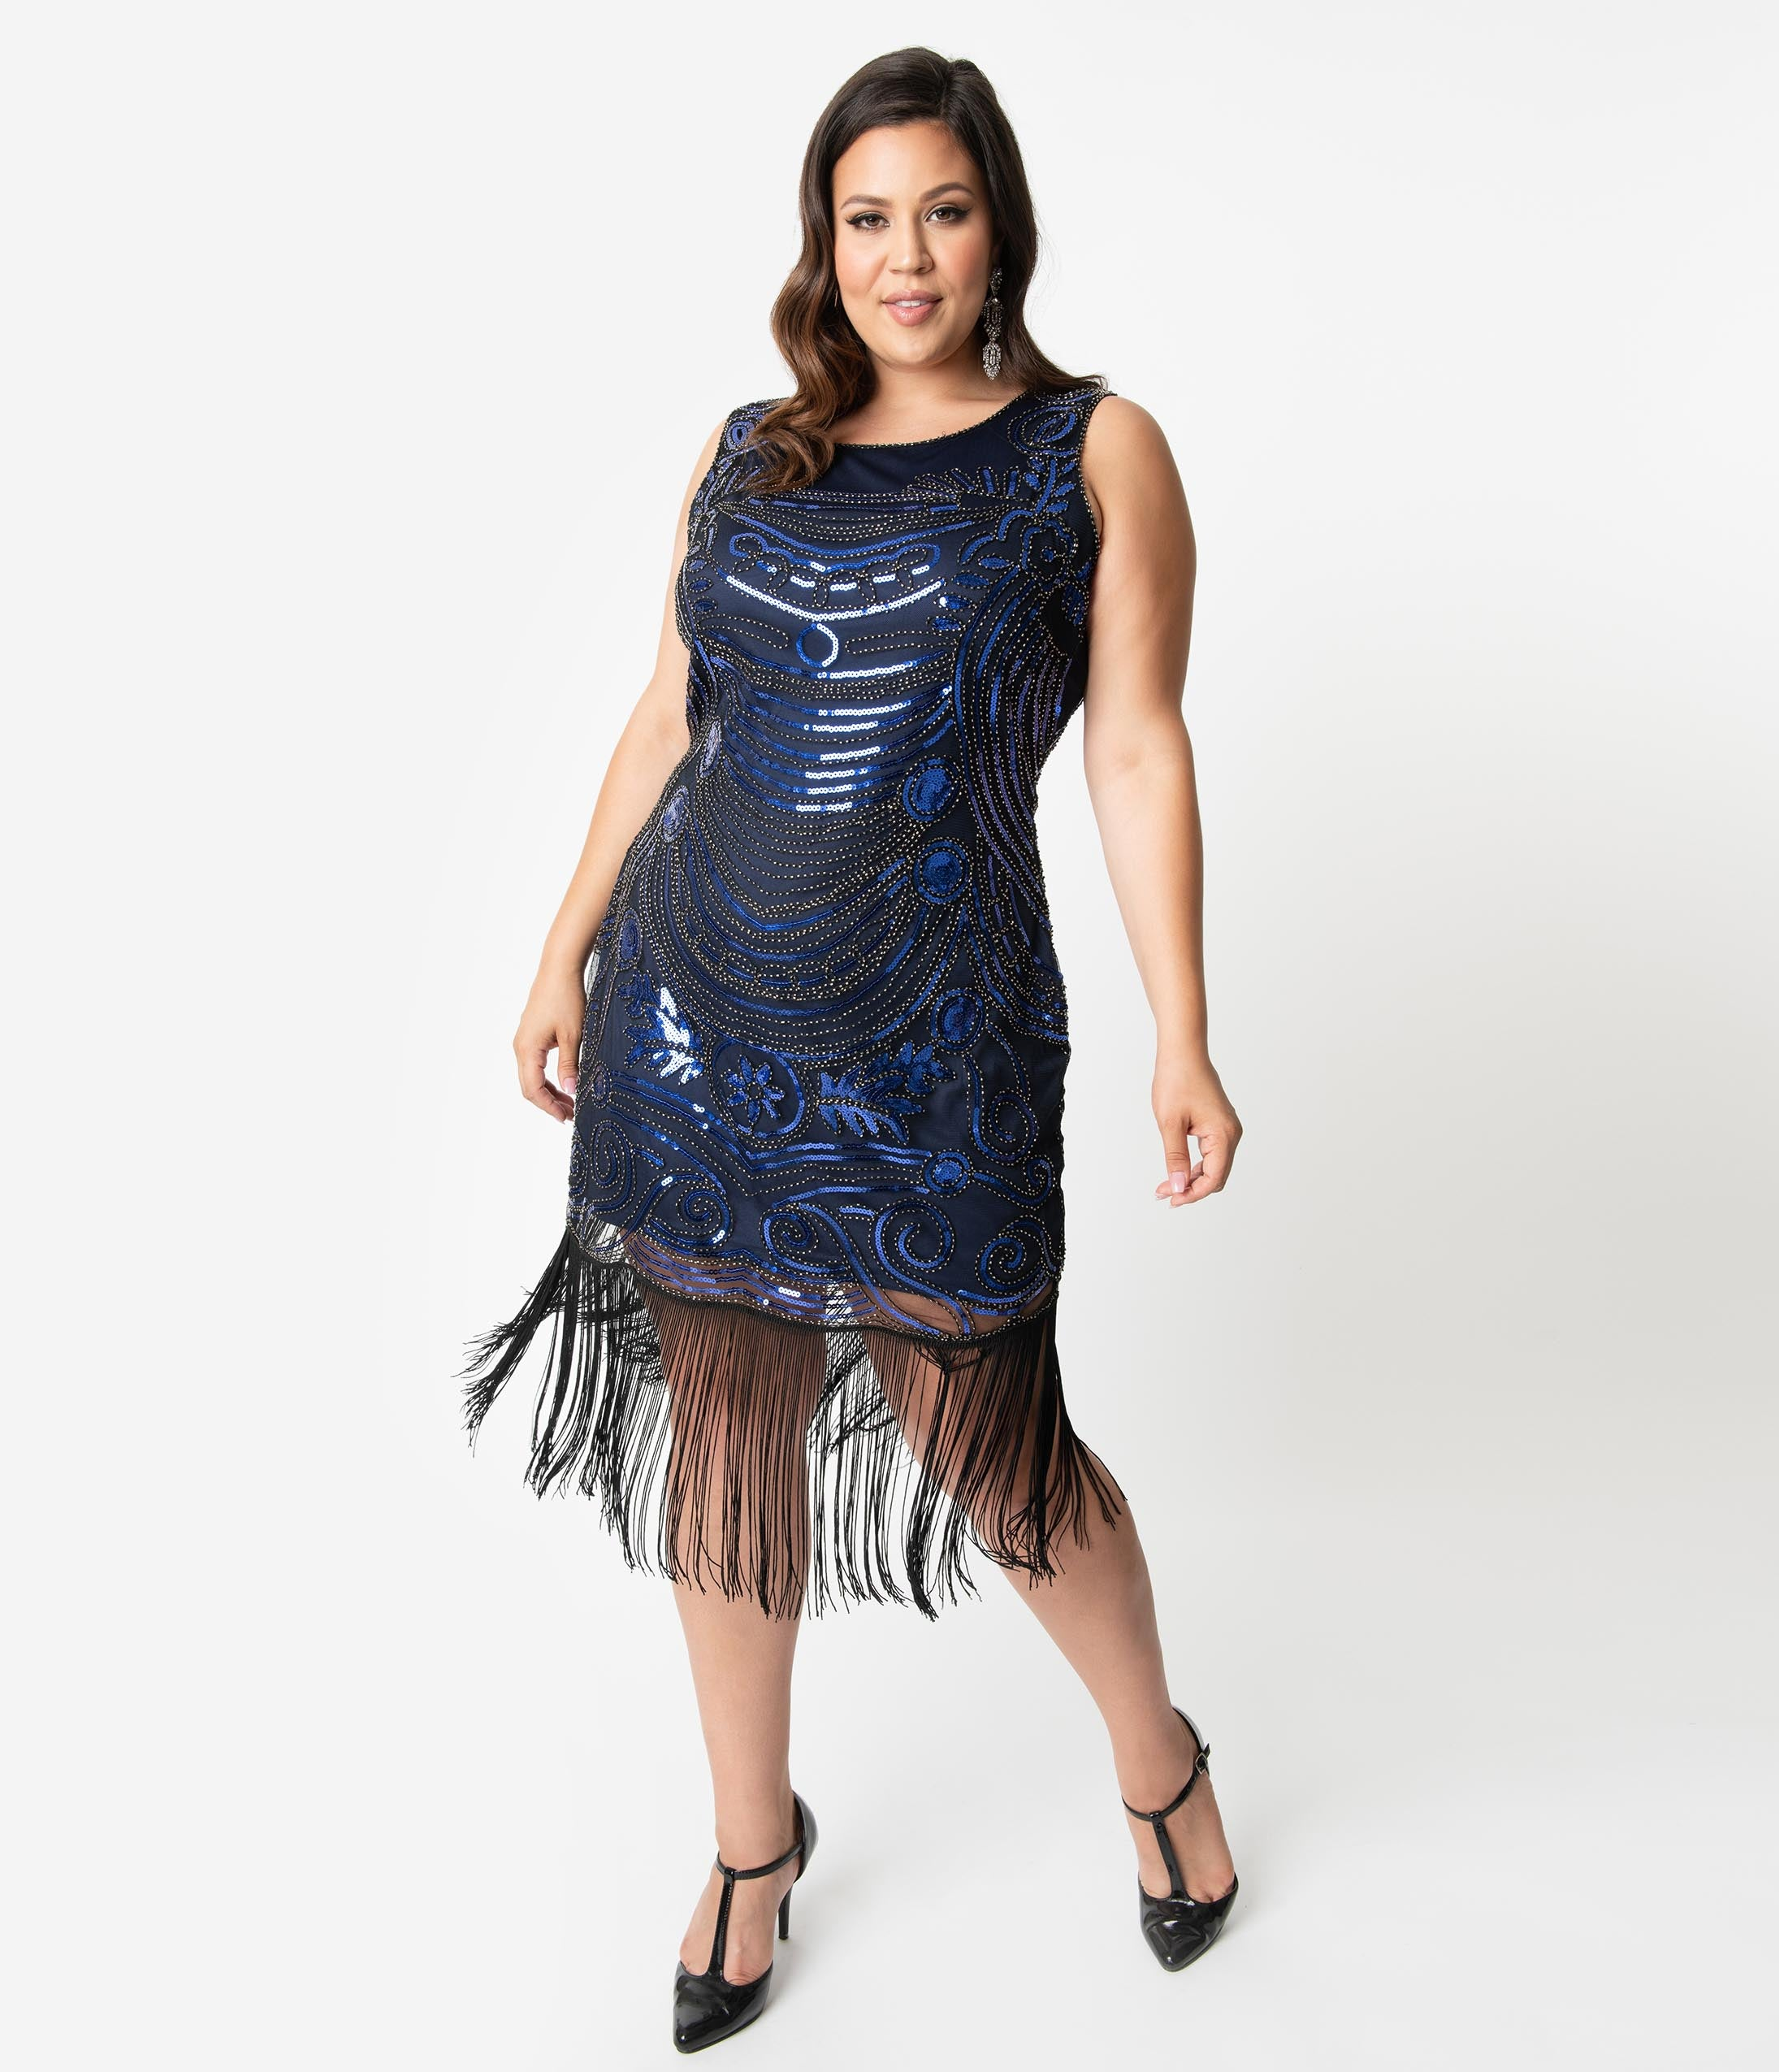 1920s Plus Size Flapper Dresses, Gatsby Dresses, Flapper Costumes Unique Vintage Plus Size 1920S Black  Blue Beaded Yvette Fringe Cocktail Dress $98.00 AT vintagedancer.com